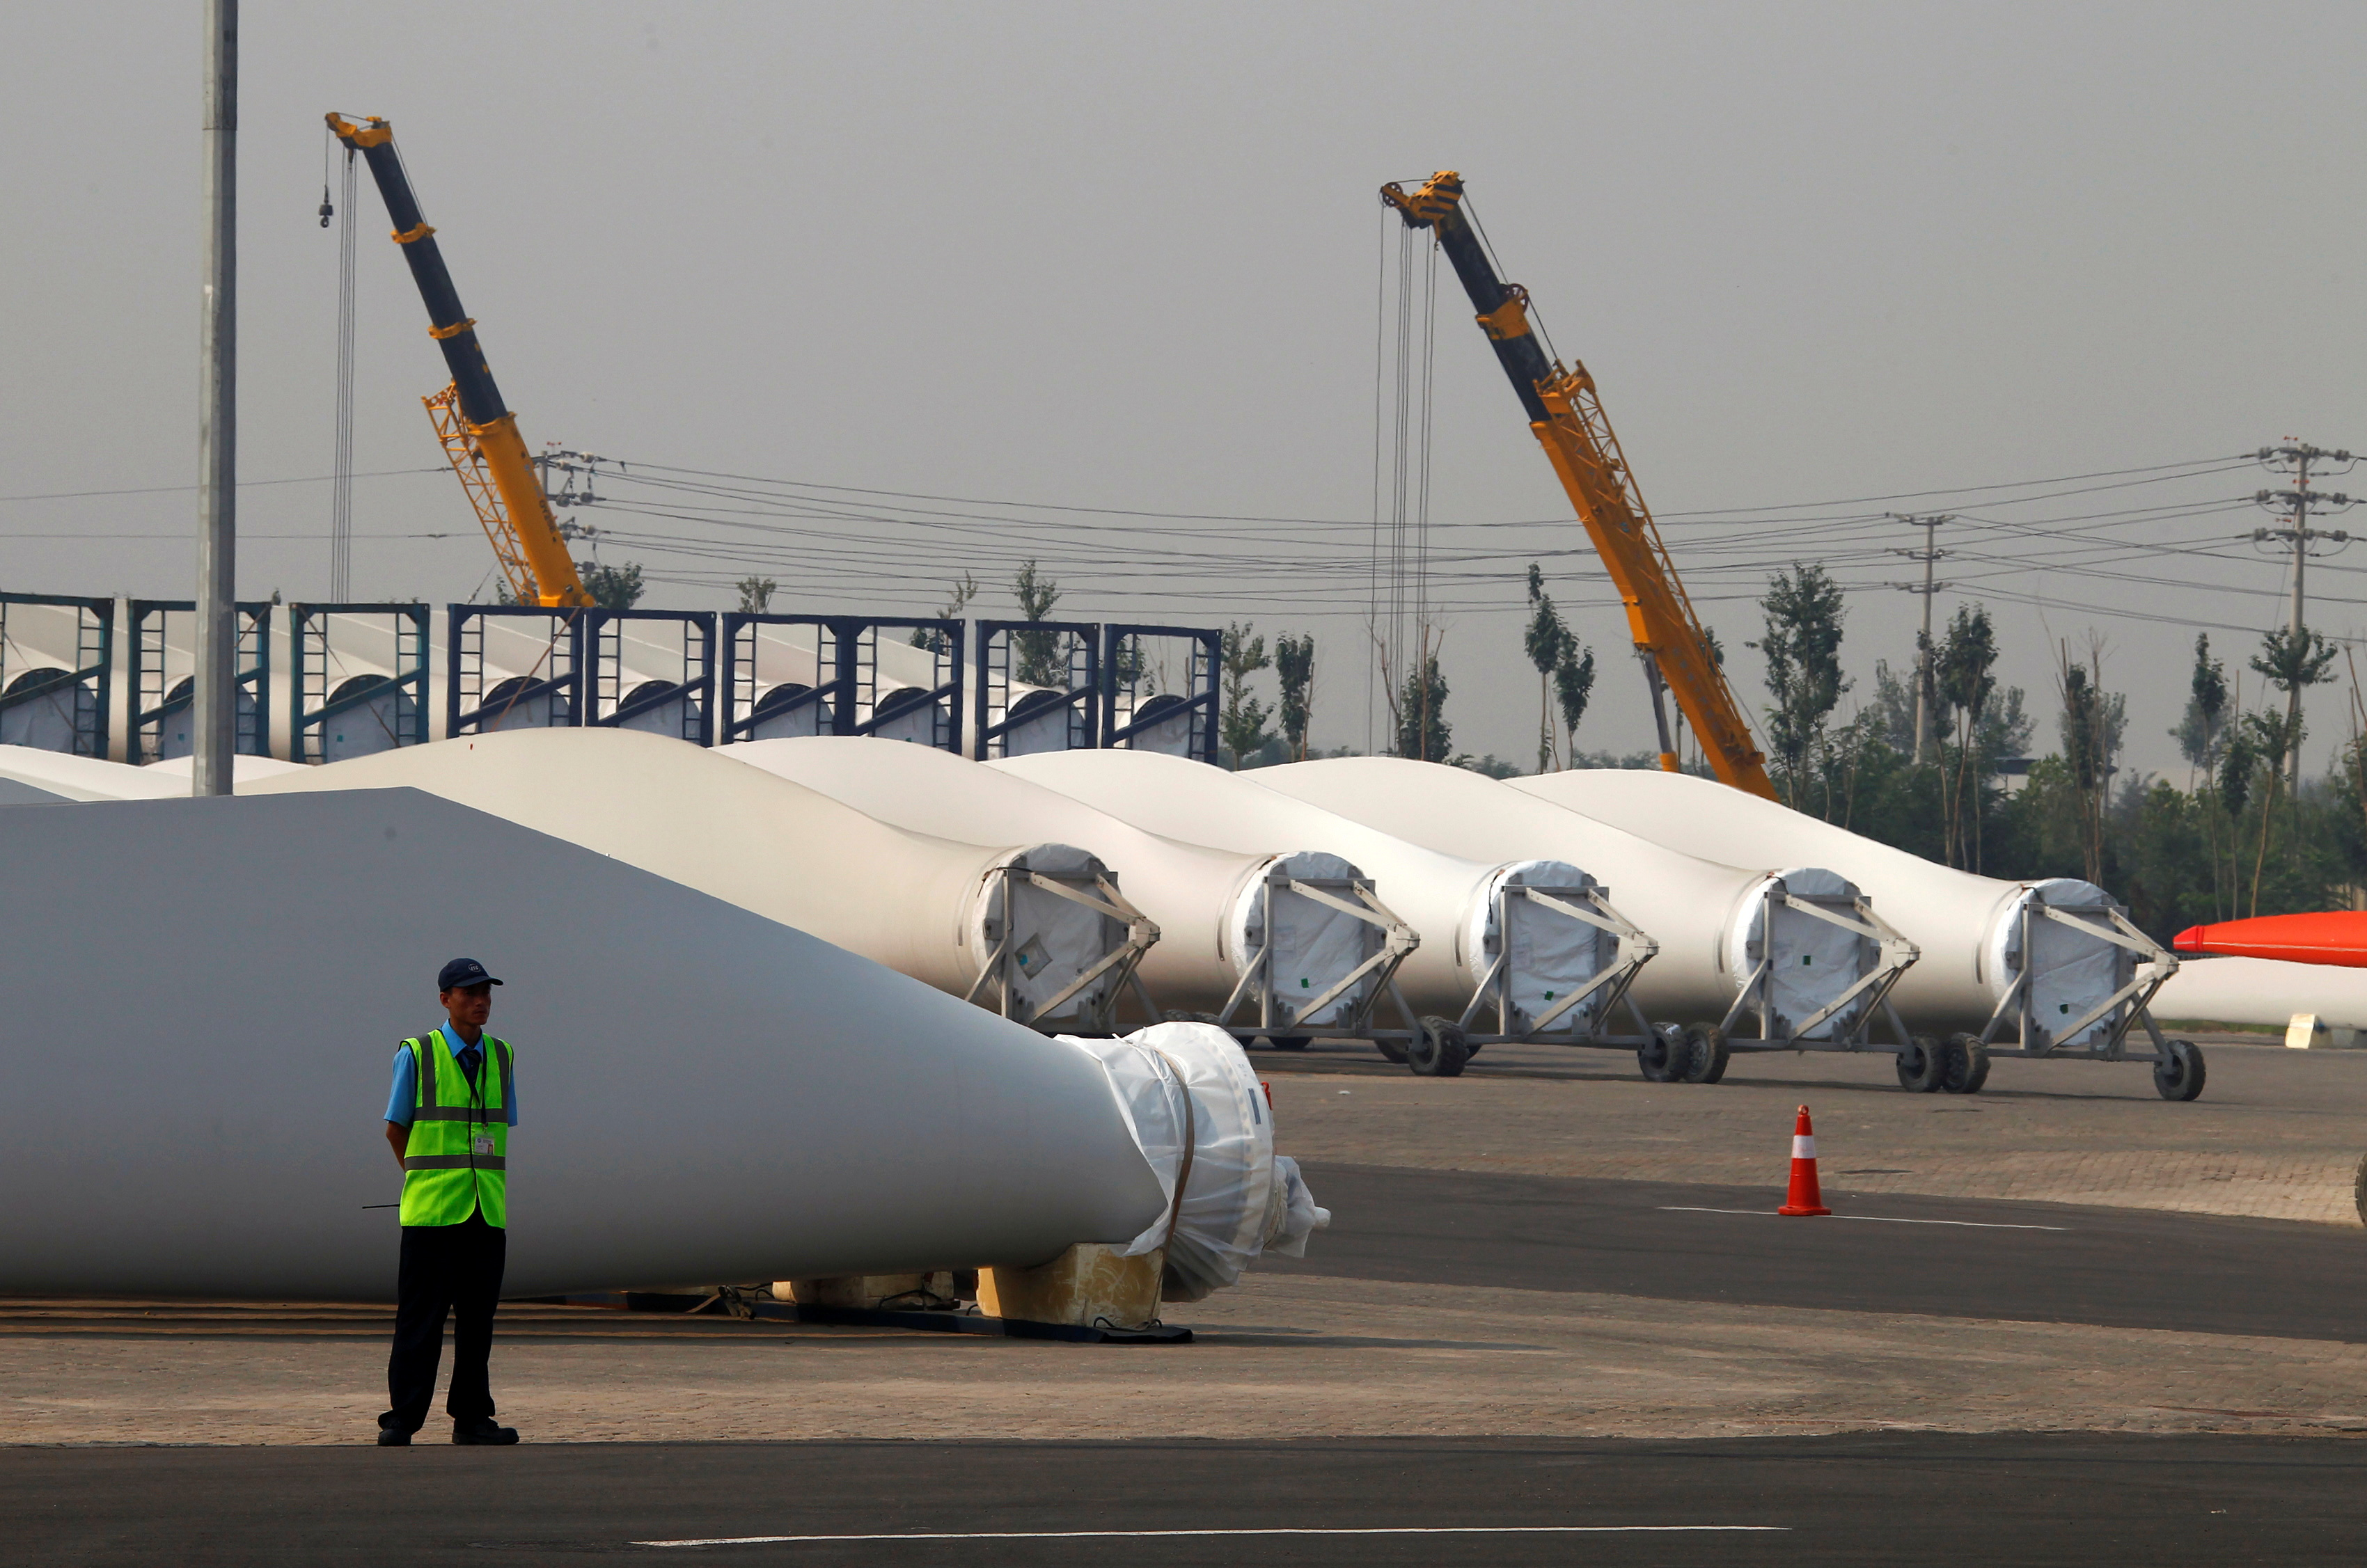 A security guard stands next to blades and bases for wind turbines in the grounds of the Vestas Wind Technology company's factory, located in the northern Chinese city of Tianjin September 14, 2010. REUTERS/David Gray